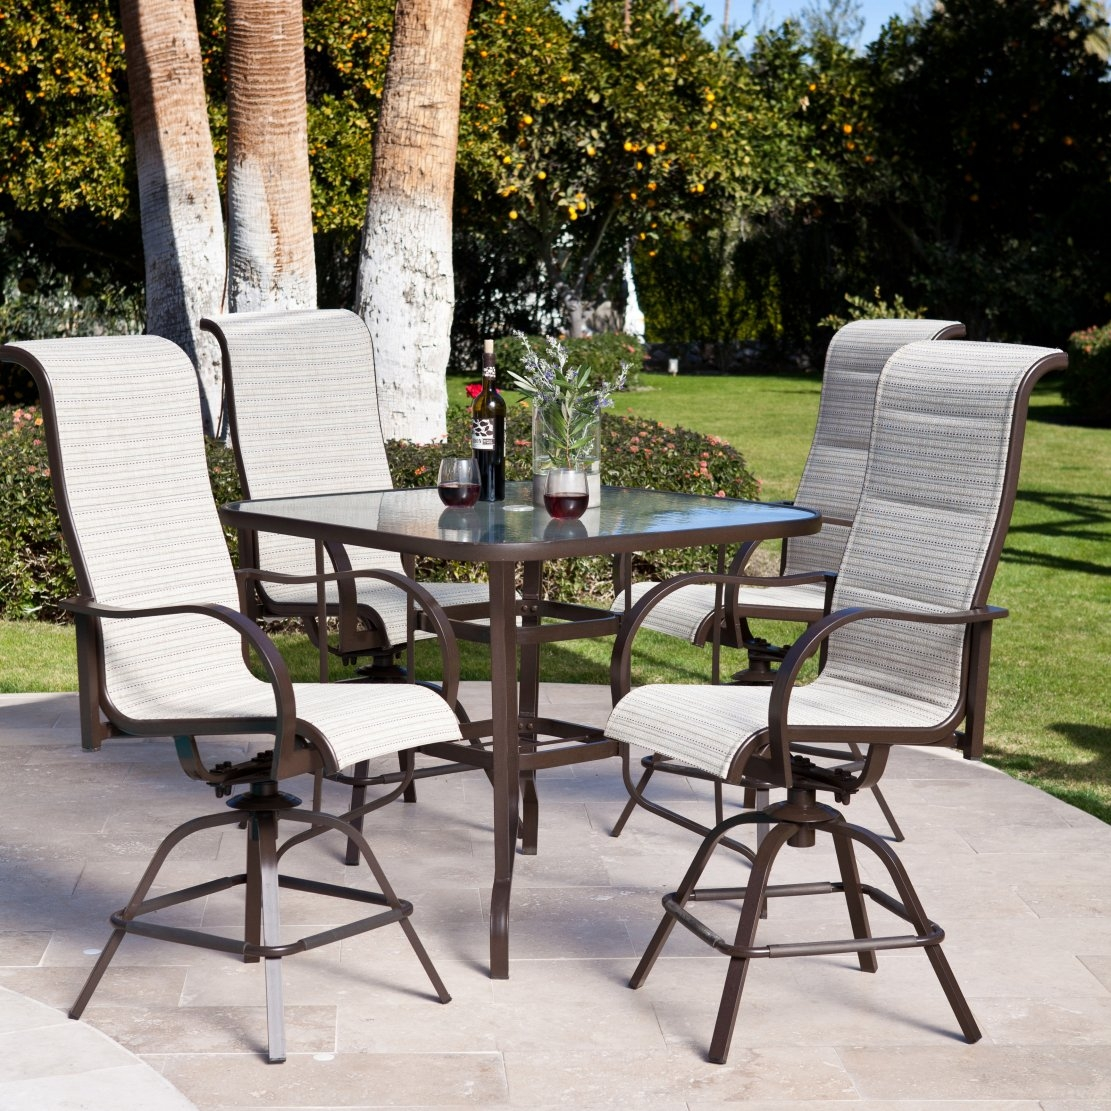 Creativeworks home decor patio furniture sets for Balcony furniture set